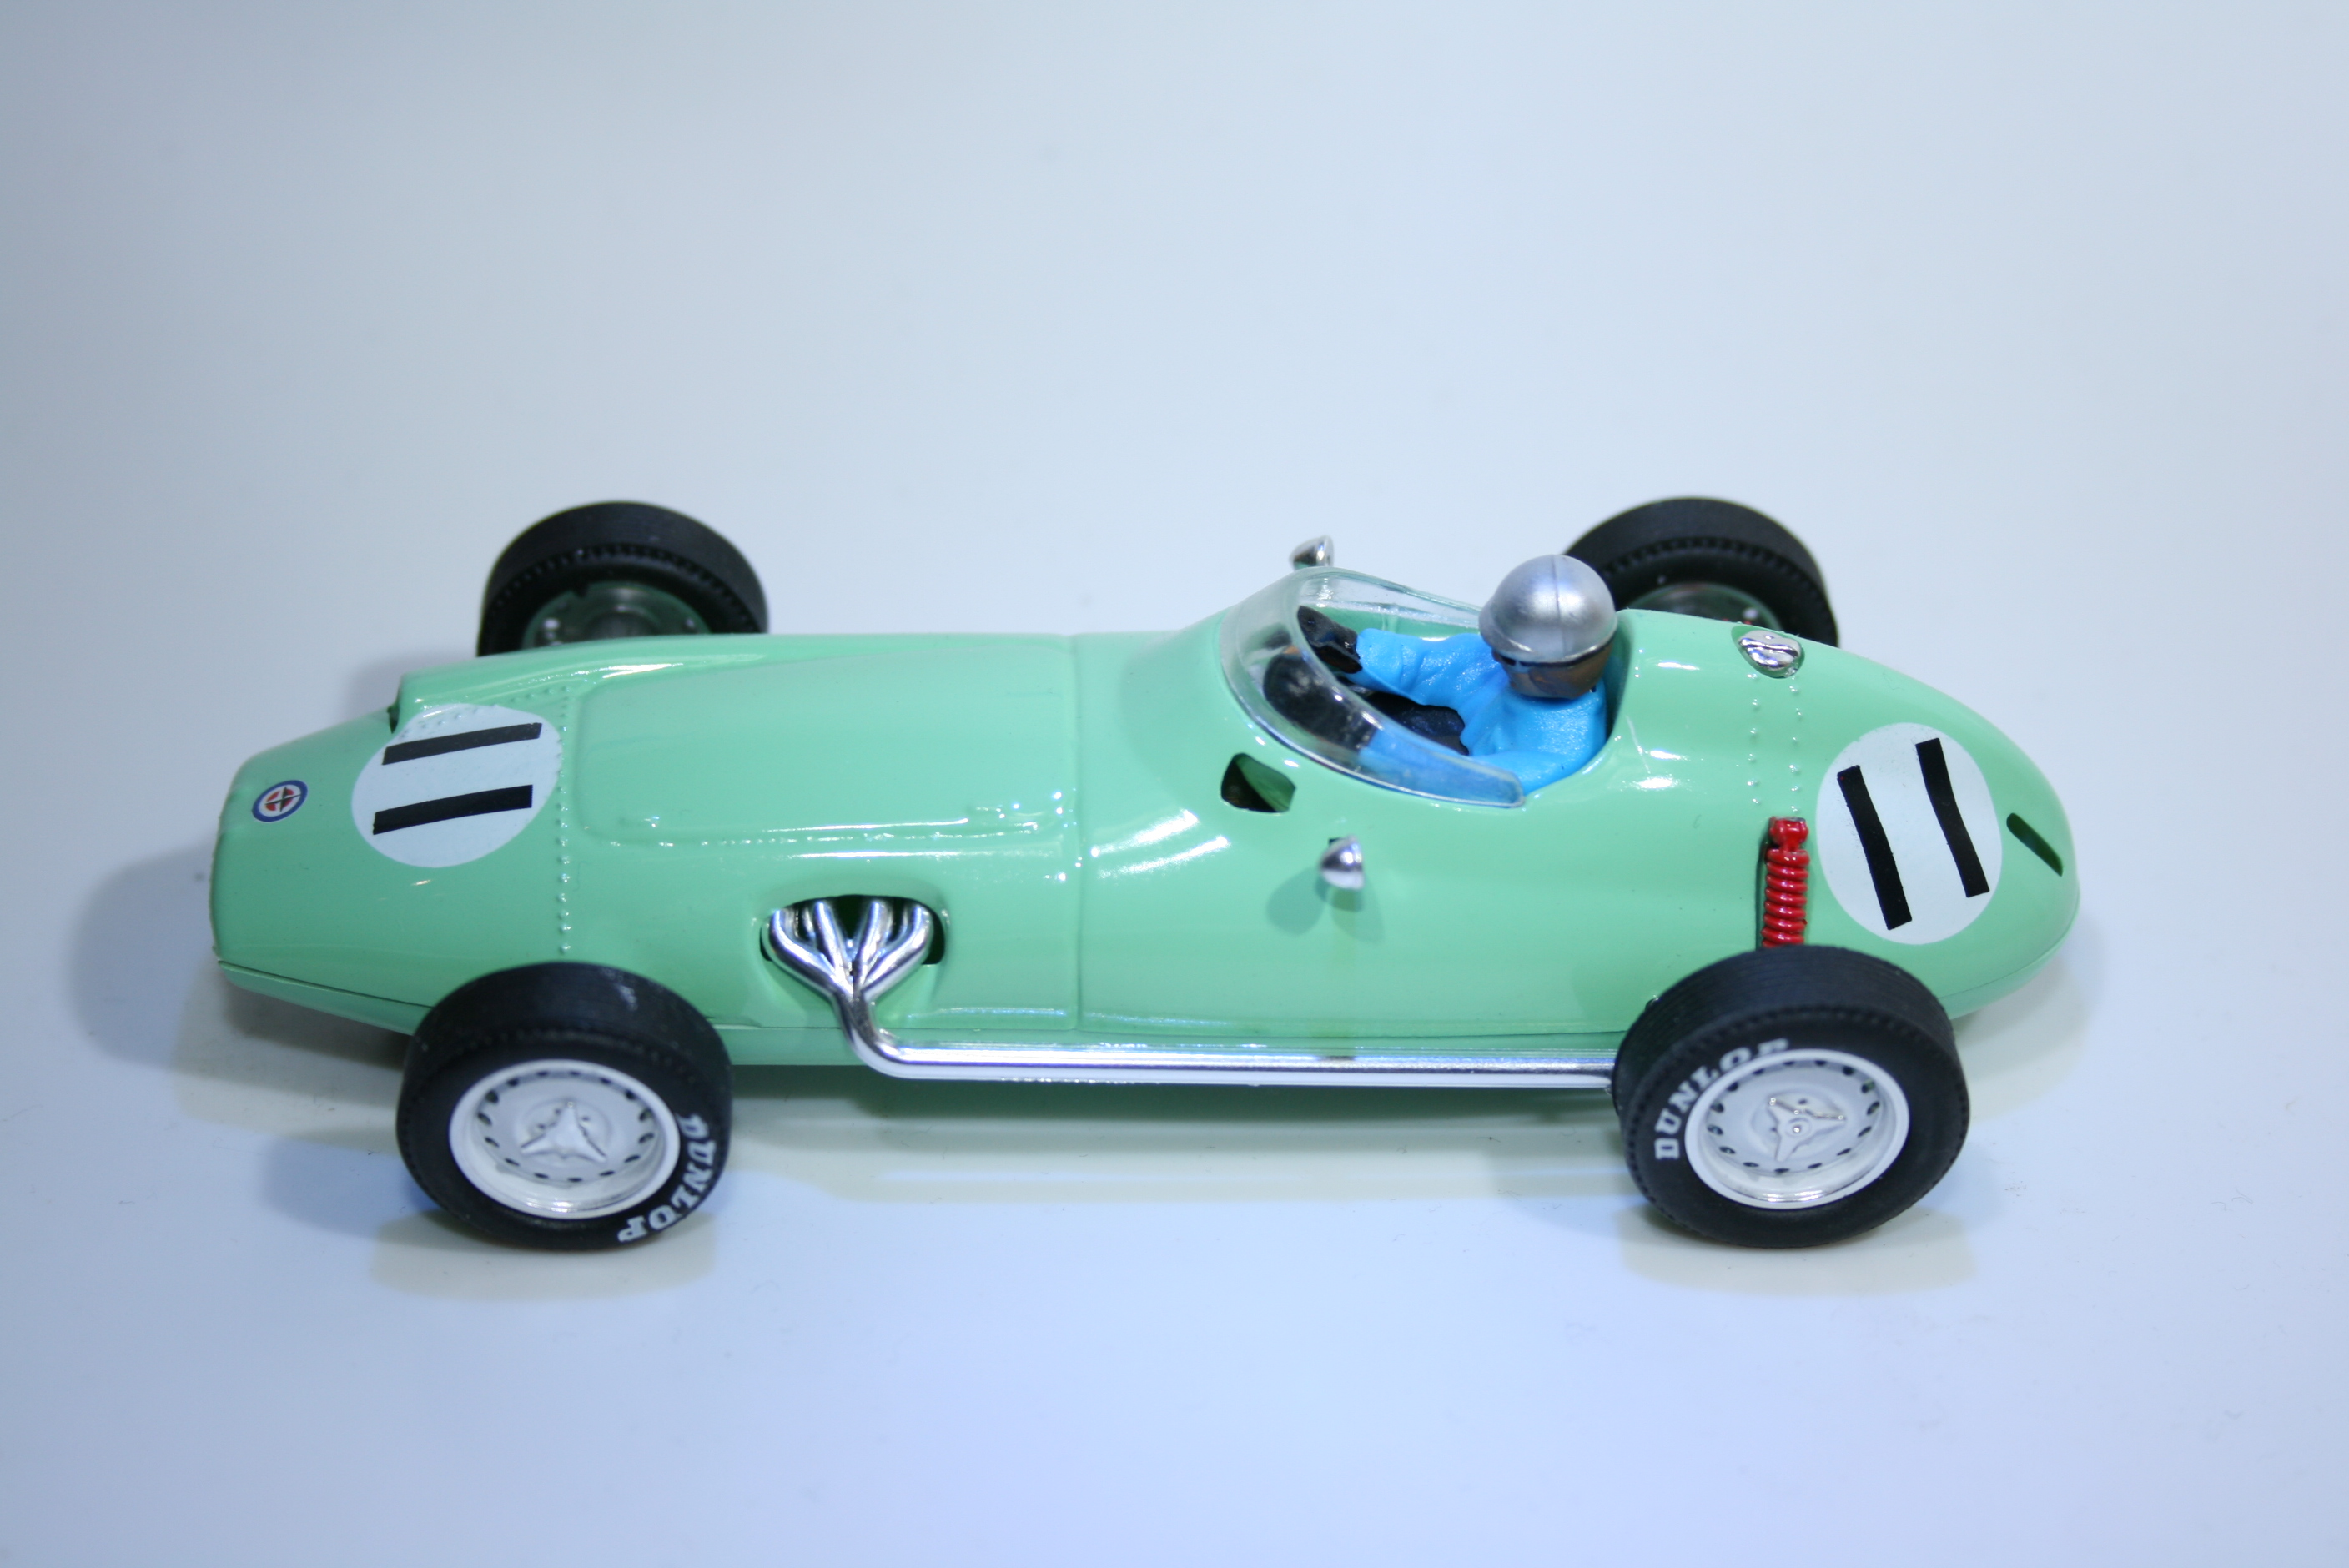 693 BRM P25 1959 H Hermann Cartrix 0026 2012 Boxed